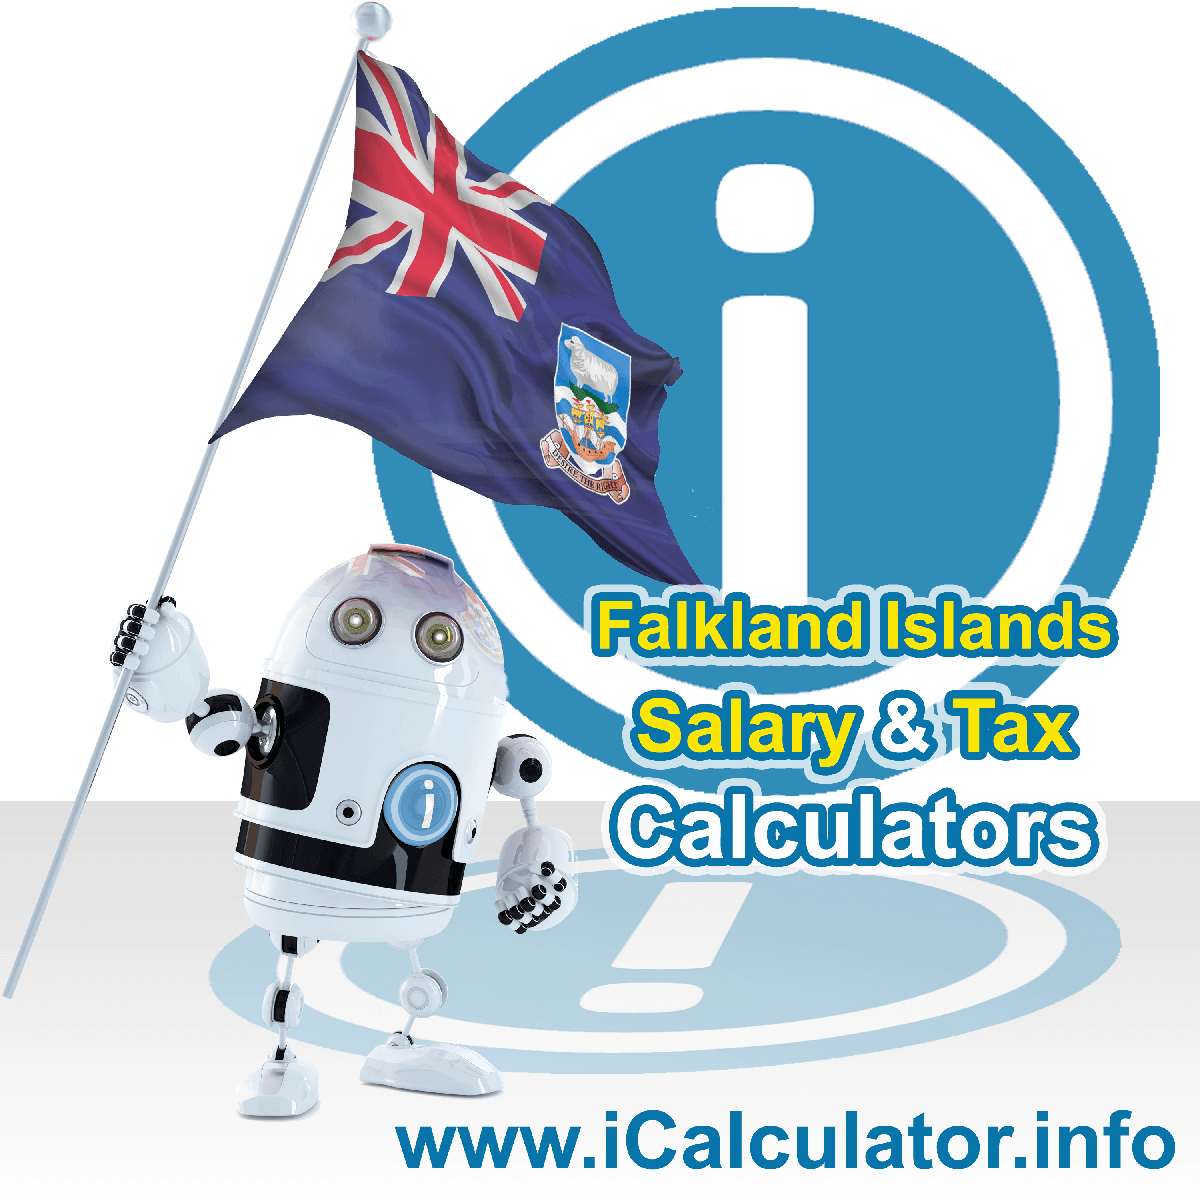 Falkland Islands Wage Calculator. This image shows the Falkland Islands flag and information relating to the tax formula for the Falkland Islands Tax Calculator